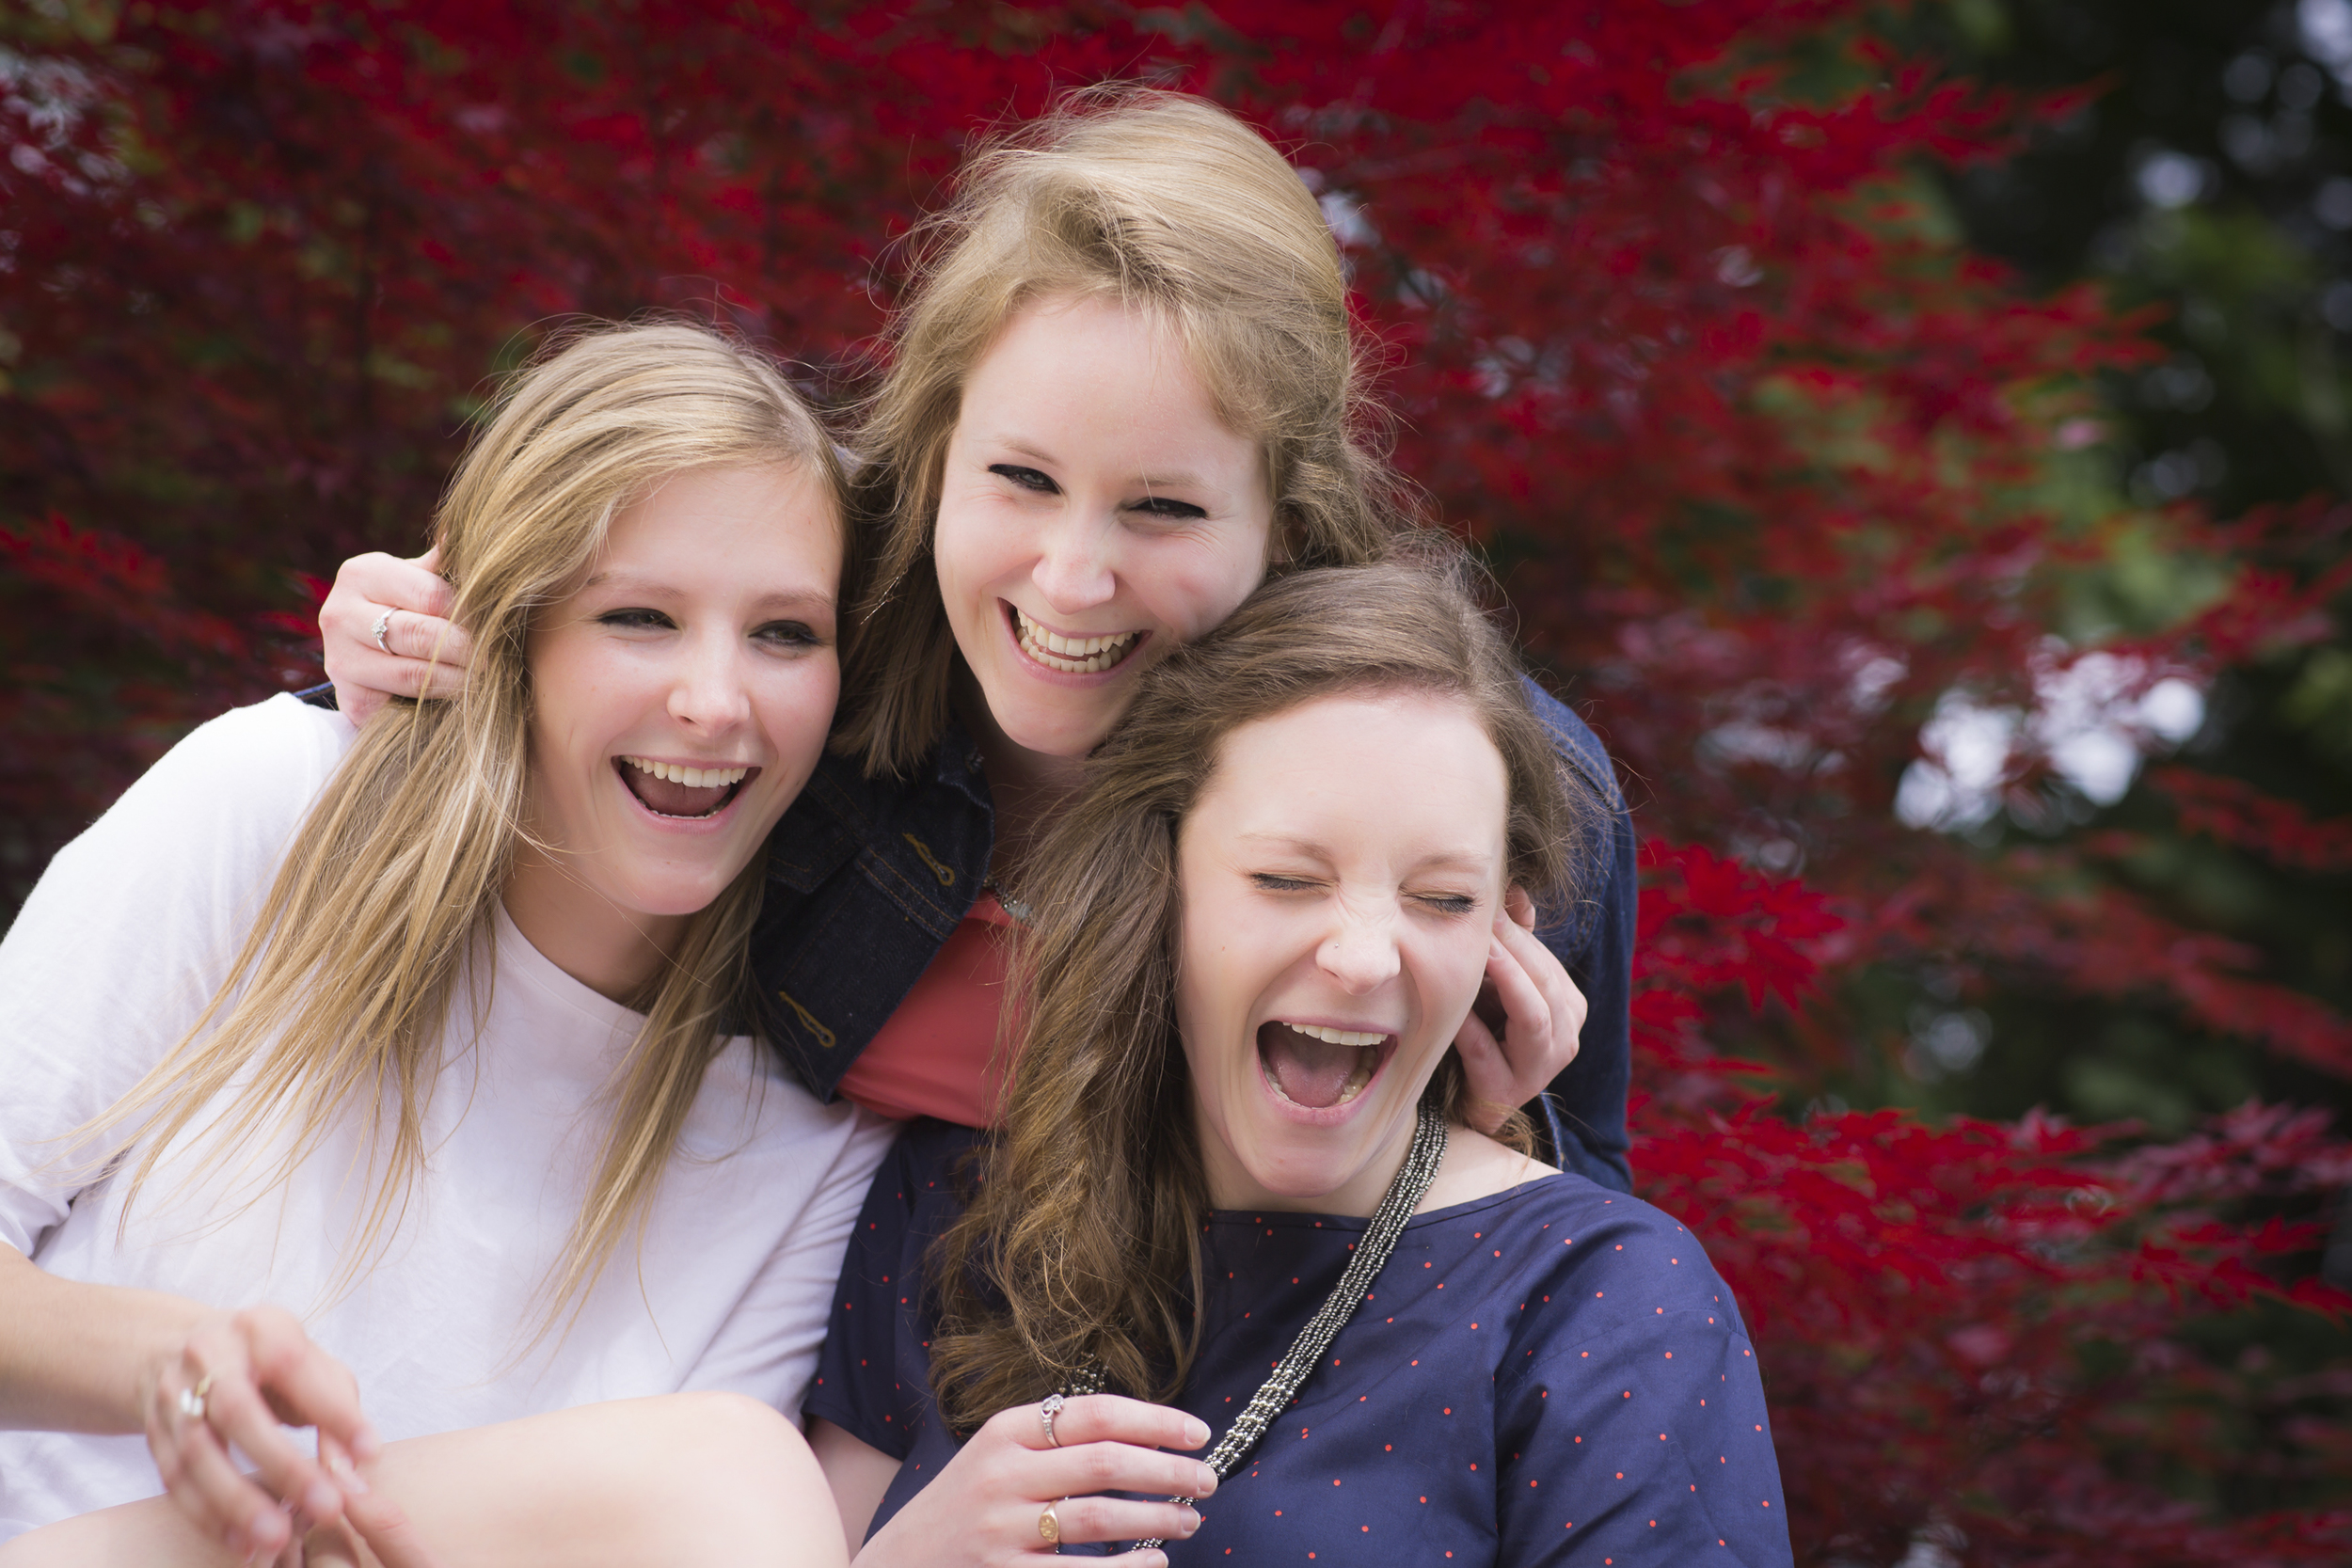 33 3 sisters family portrait outdoor session being silly red maple tree.jpg